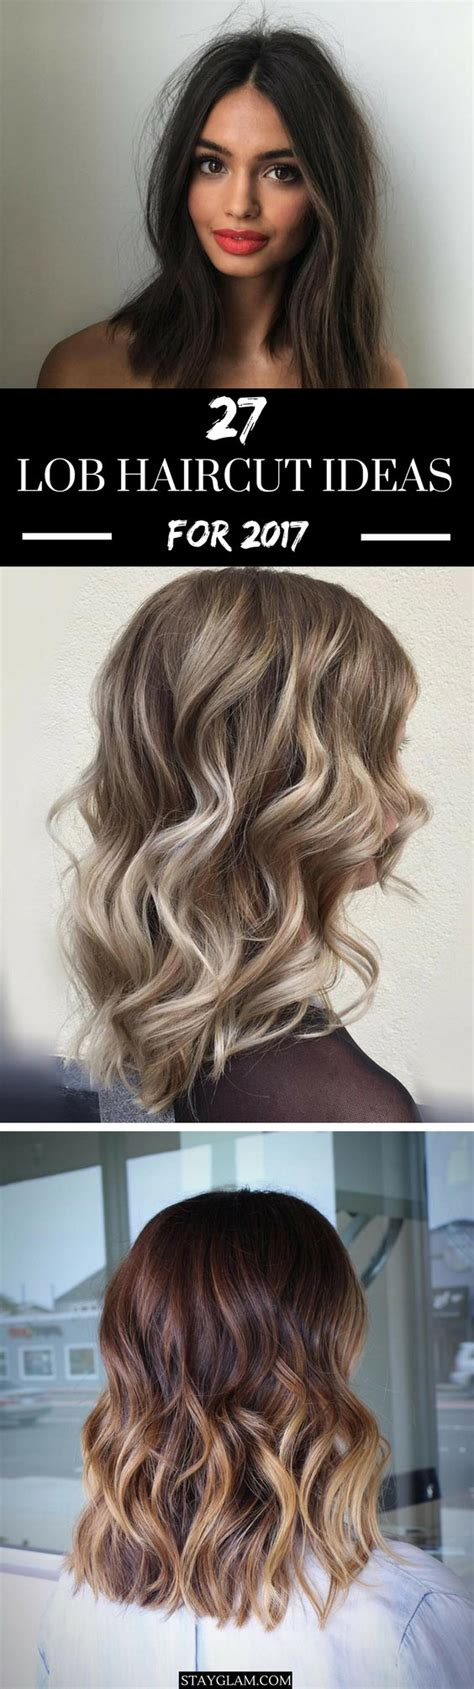 photos to copy for ideas haircuts for long thin hair to make it look thicker 27 pretty lob haircut ideas you should copy in 2017 stayglam